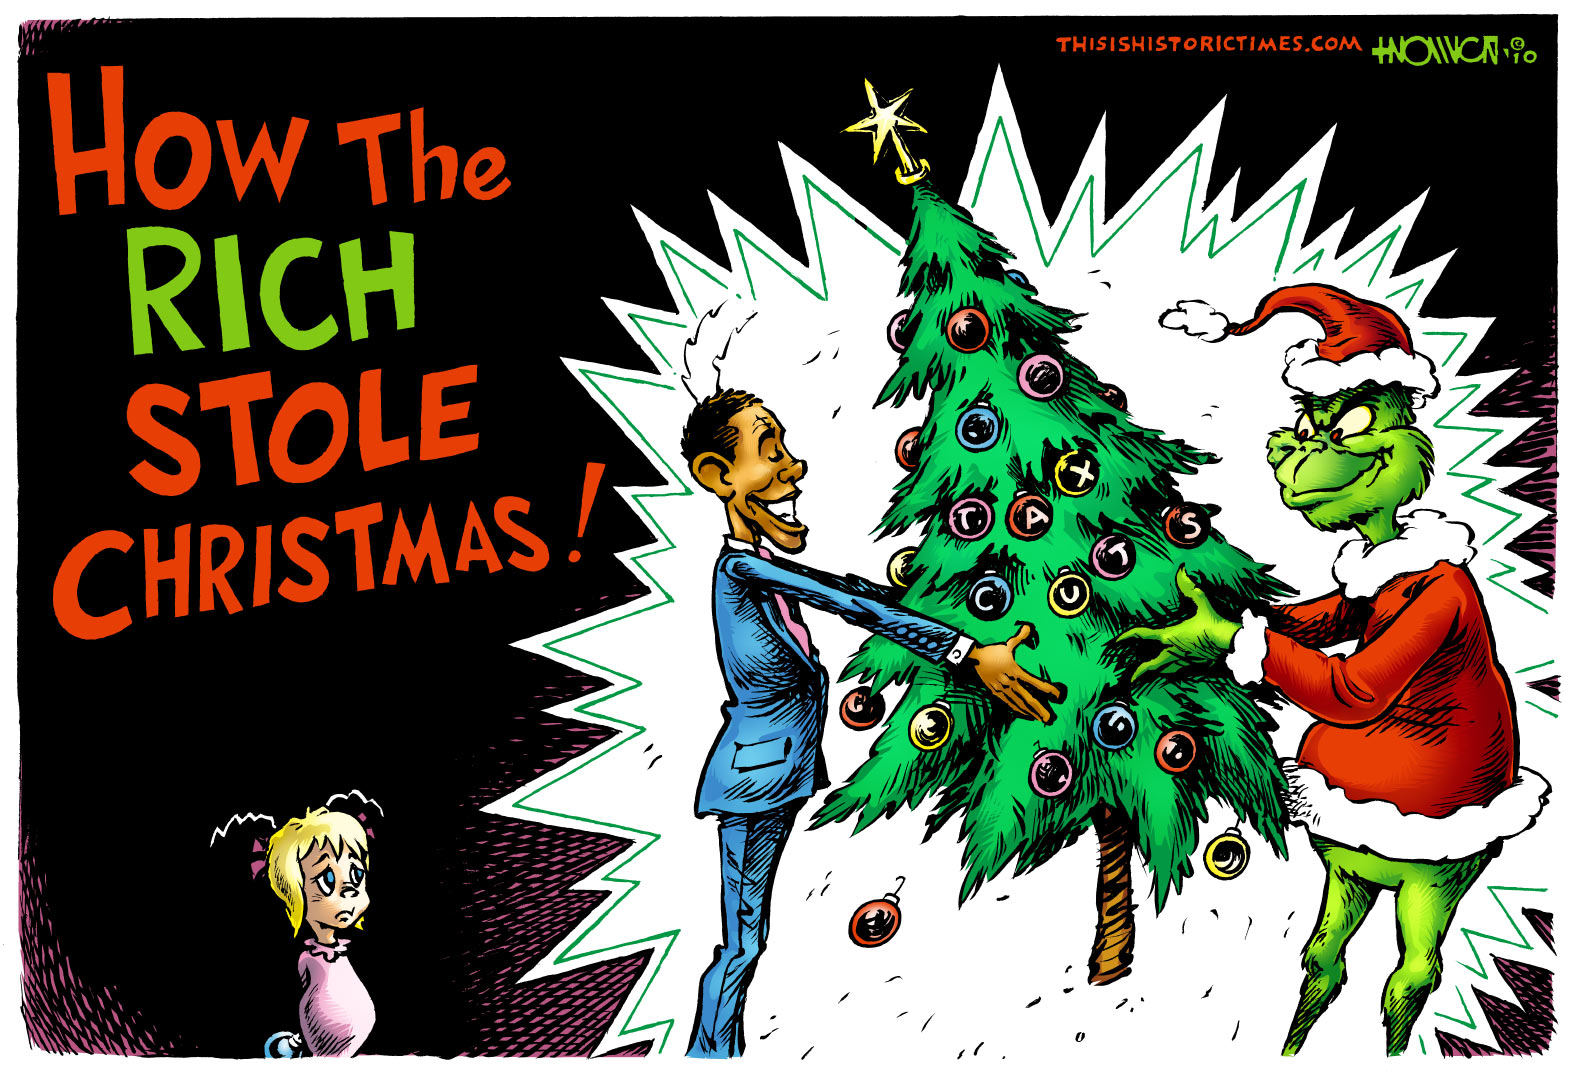 How the Rich Stole Christmas!